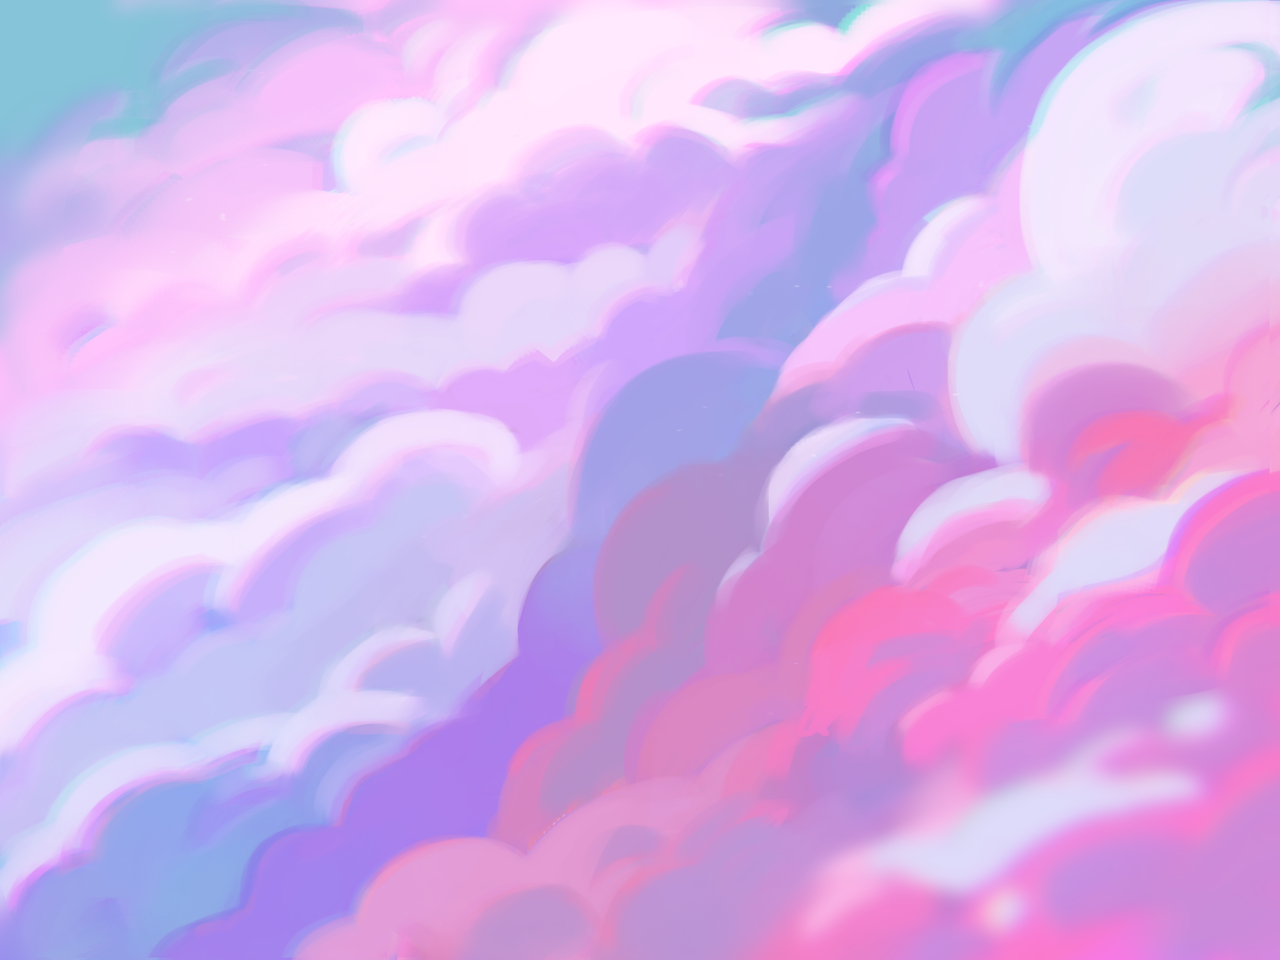 cotton candy daydreams